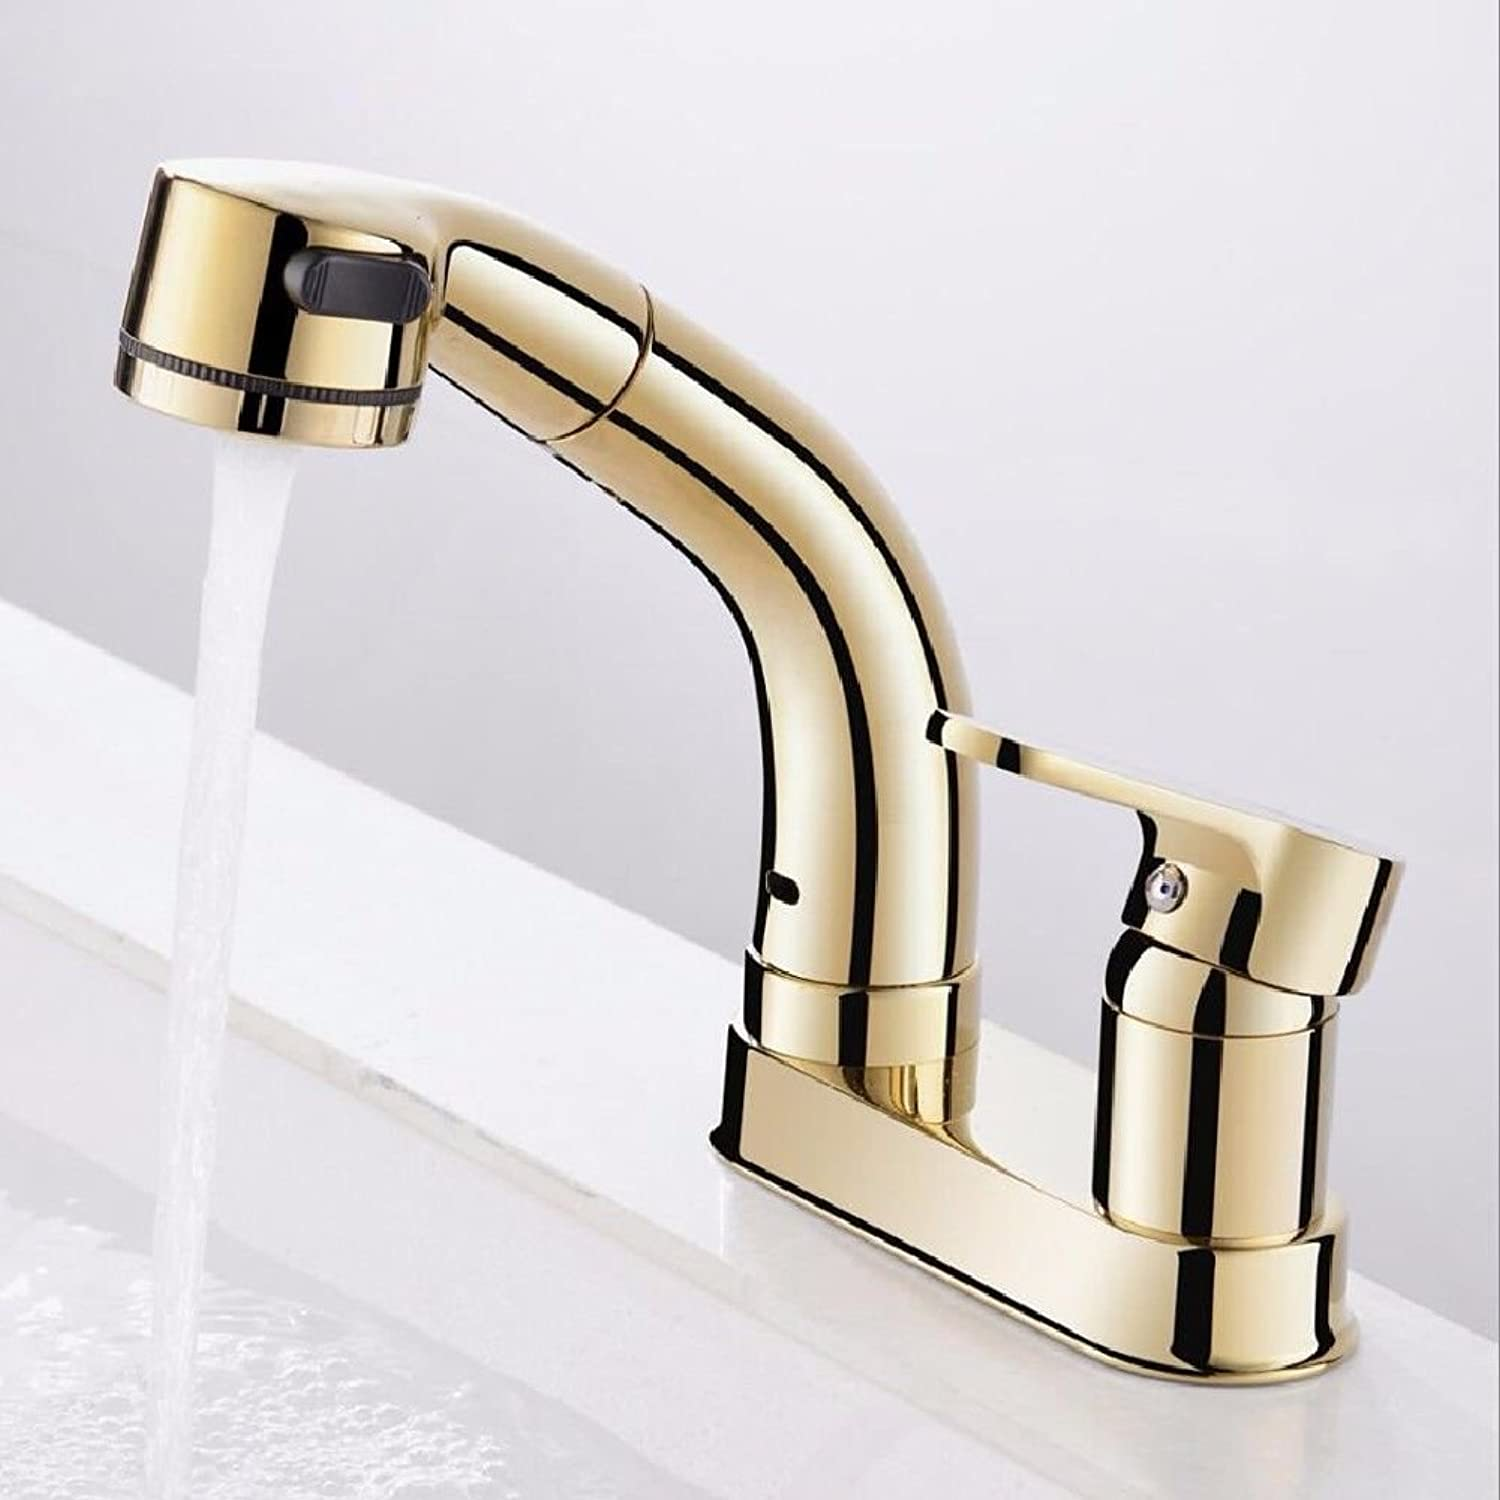 Lpophy Bathroom Sink Mixer Taps Faucet Bath Waterfall Cold and Hot Water Tap for Washroom Bathroom and Kitchen gold Double Hole Pull Type Hot and Cold Lifting